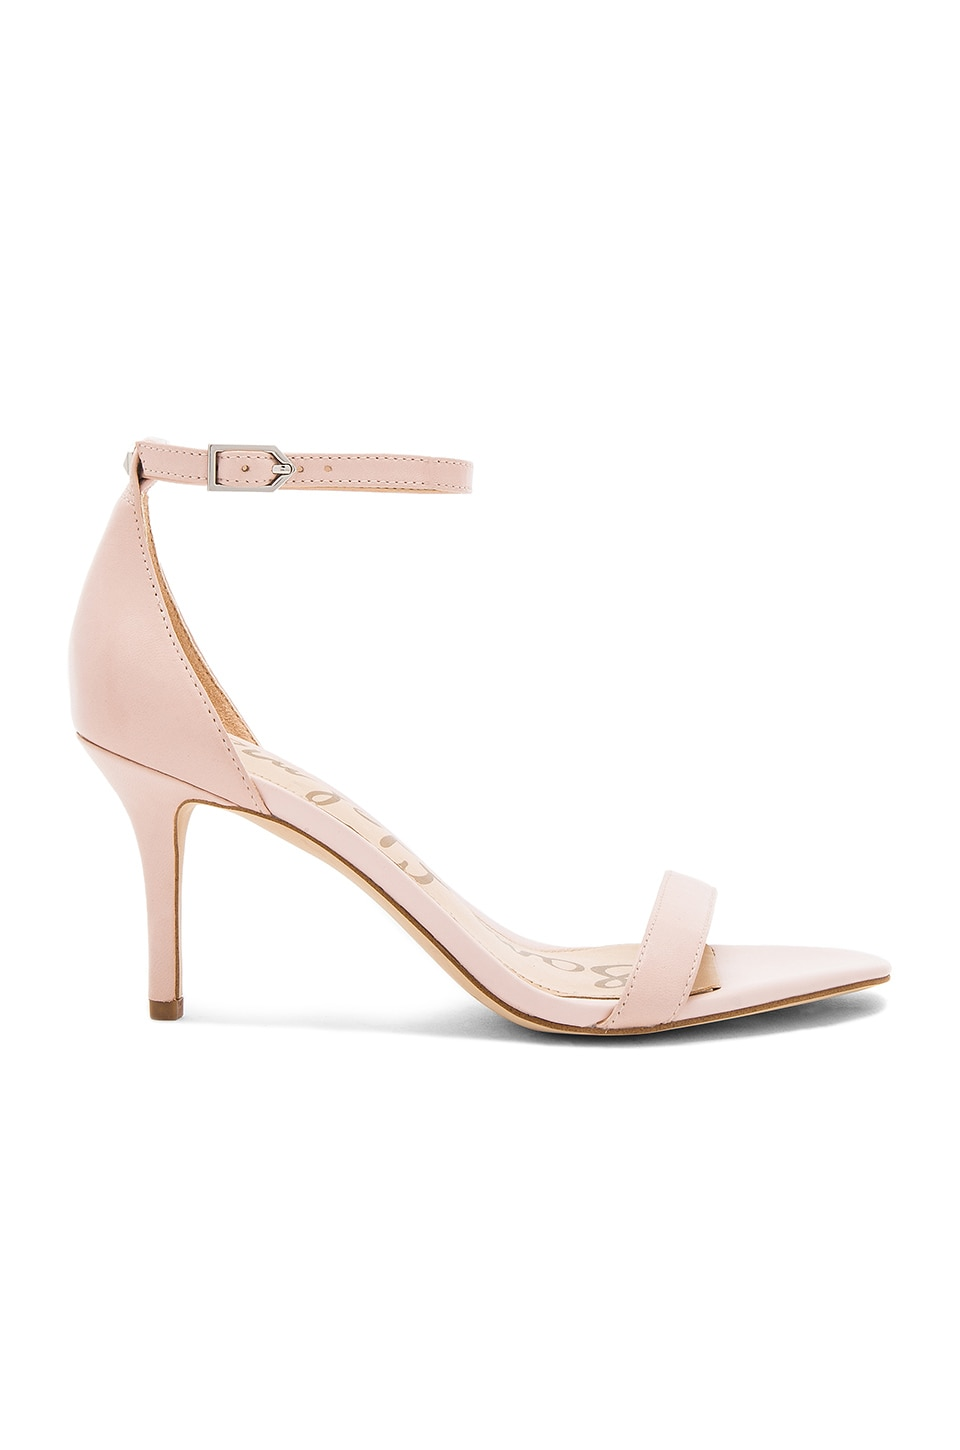 Sam Edelman Patti Heel in Primrose